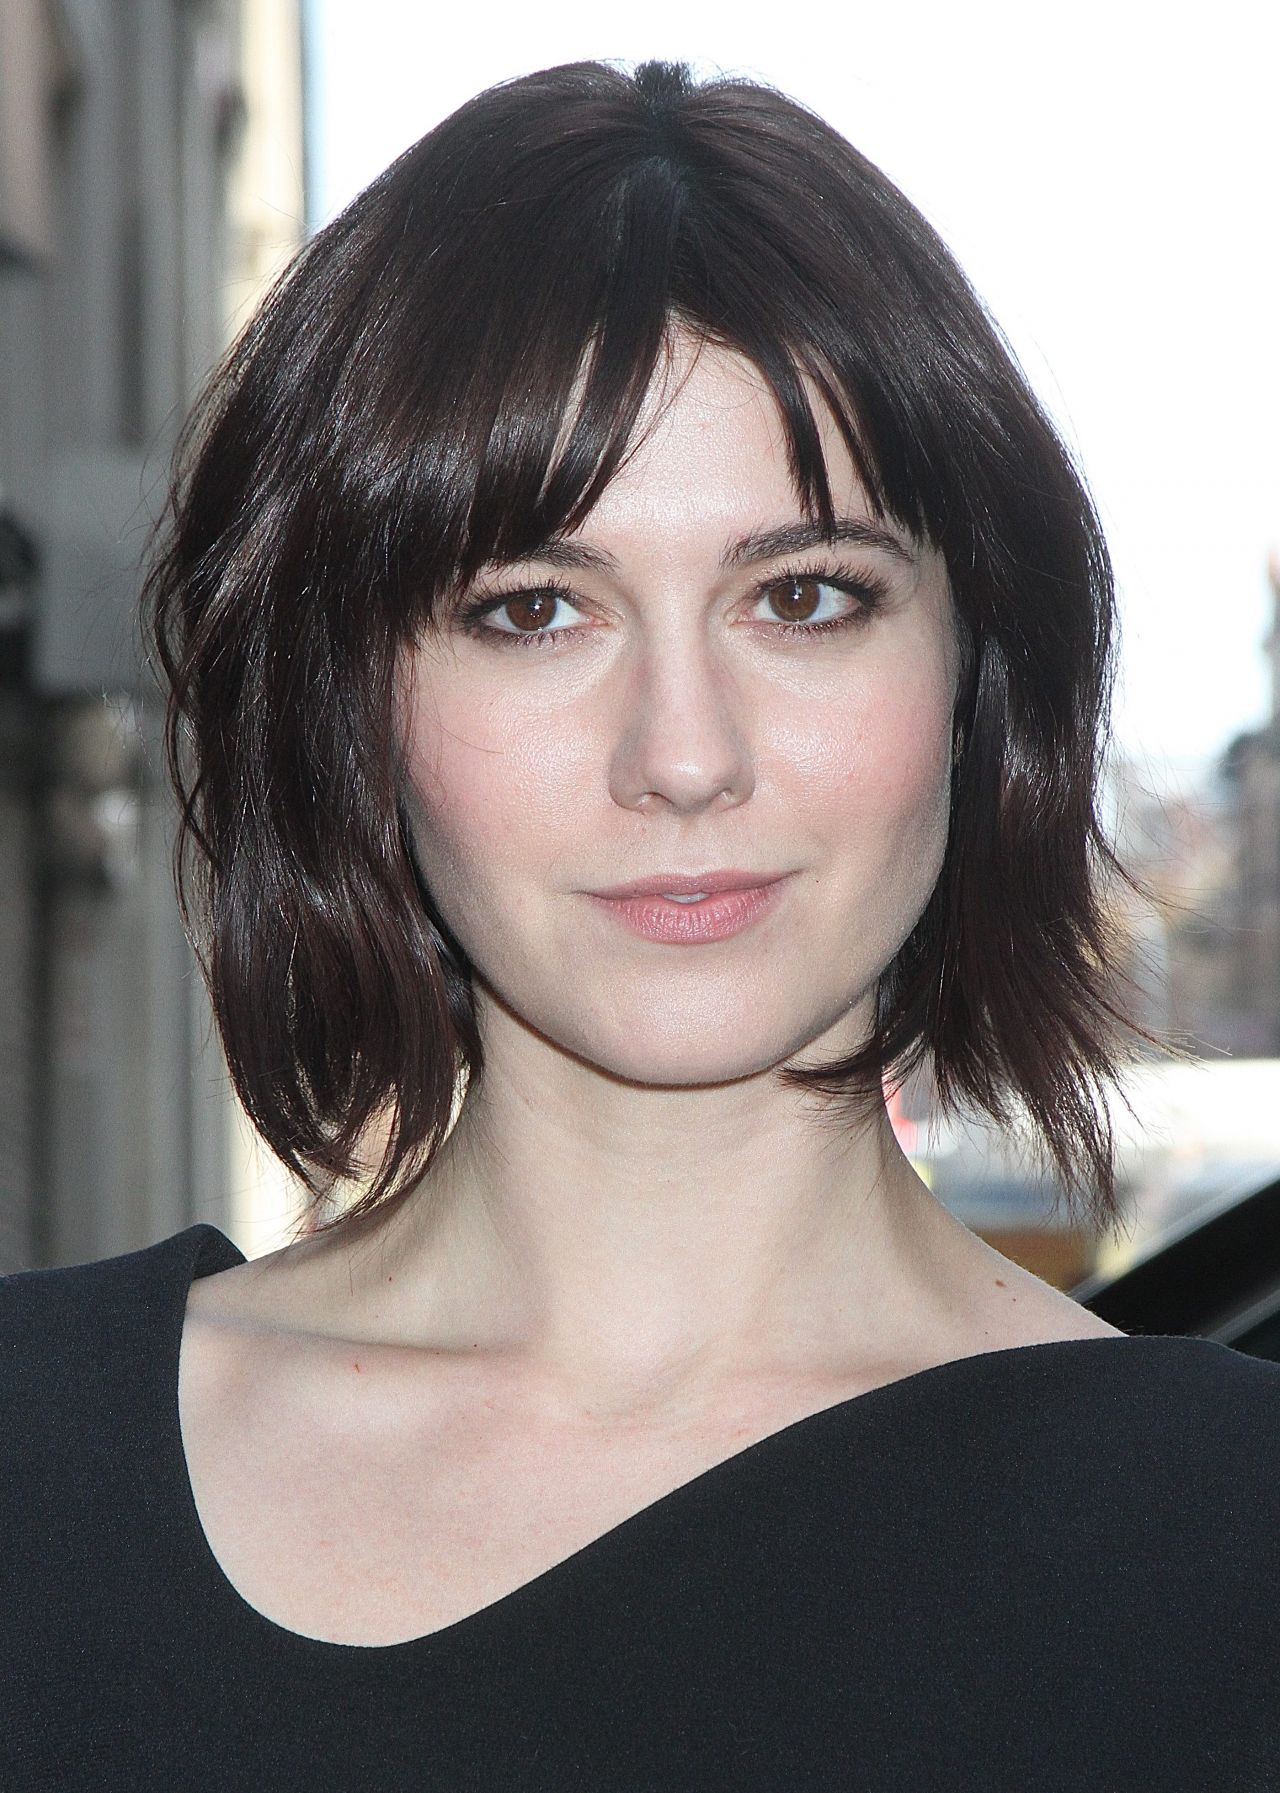 Mary elizabeth winstead fargo - 3 part 3